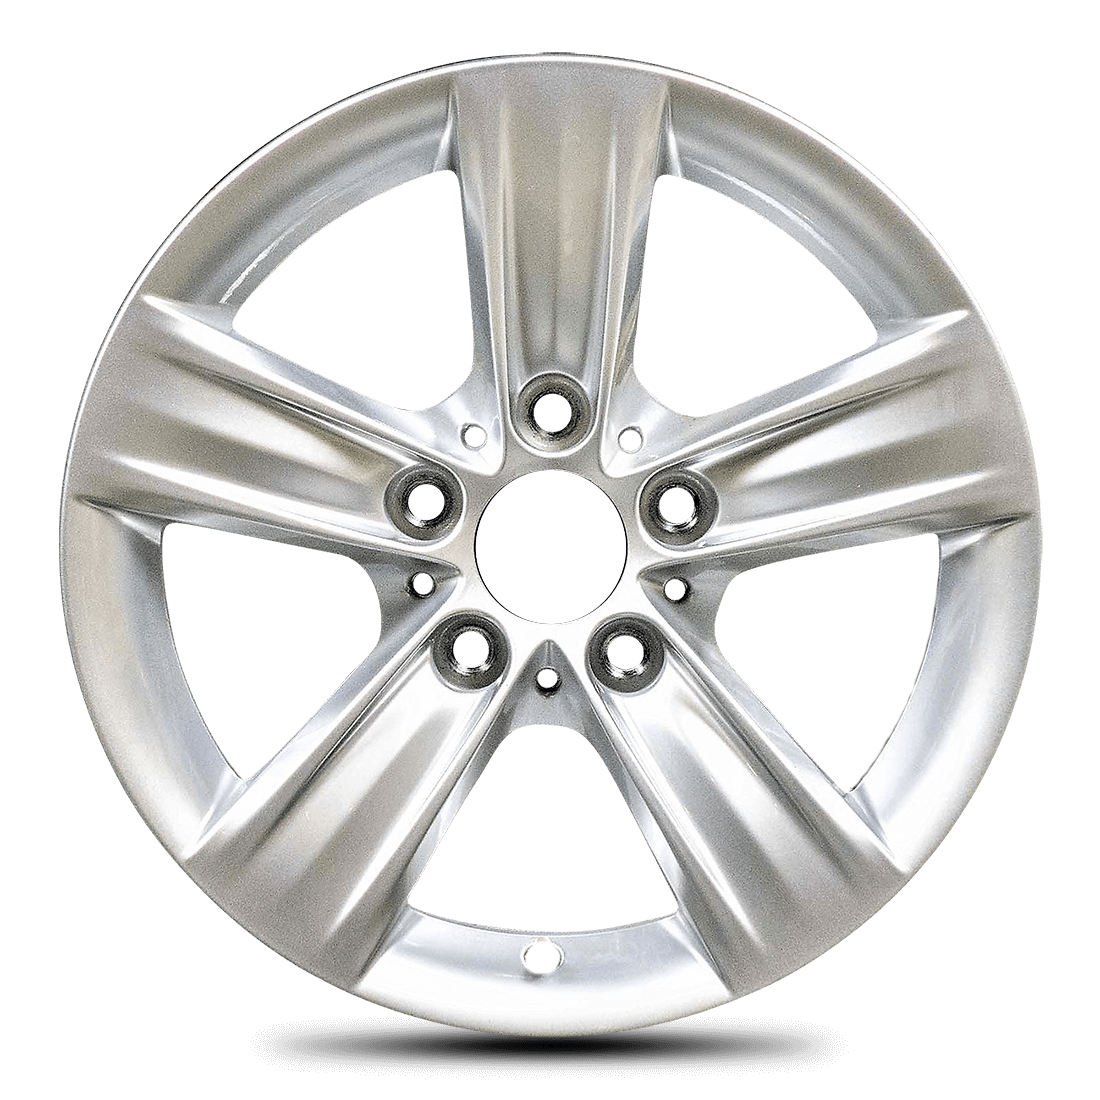 BMW OEM Winter Wheel (without BMW logo) 7.5x16 5x120 E37 C72.6 - 20+ kpl</